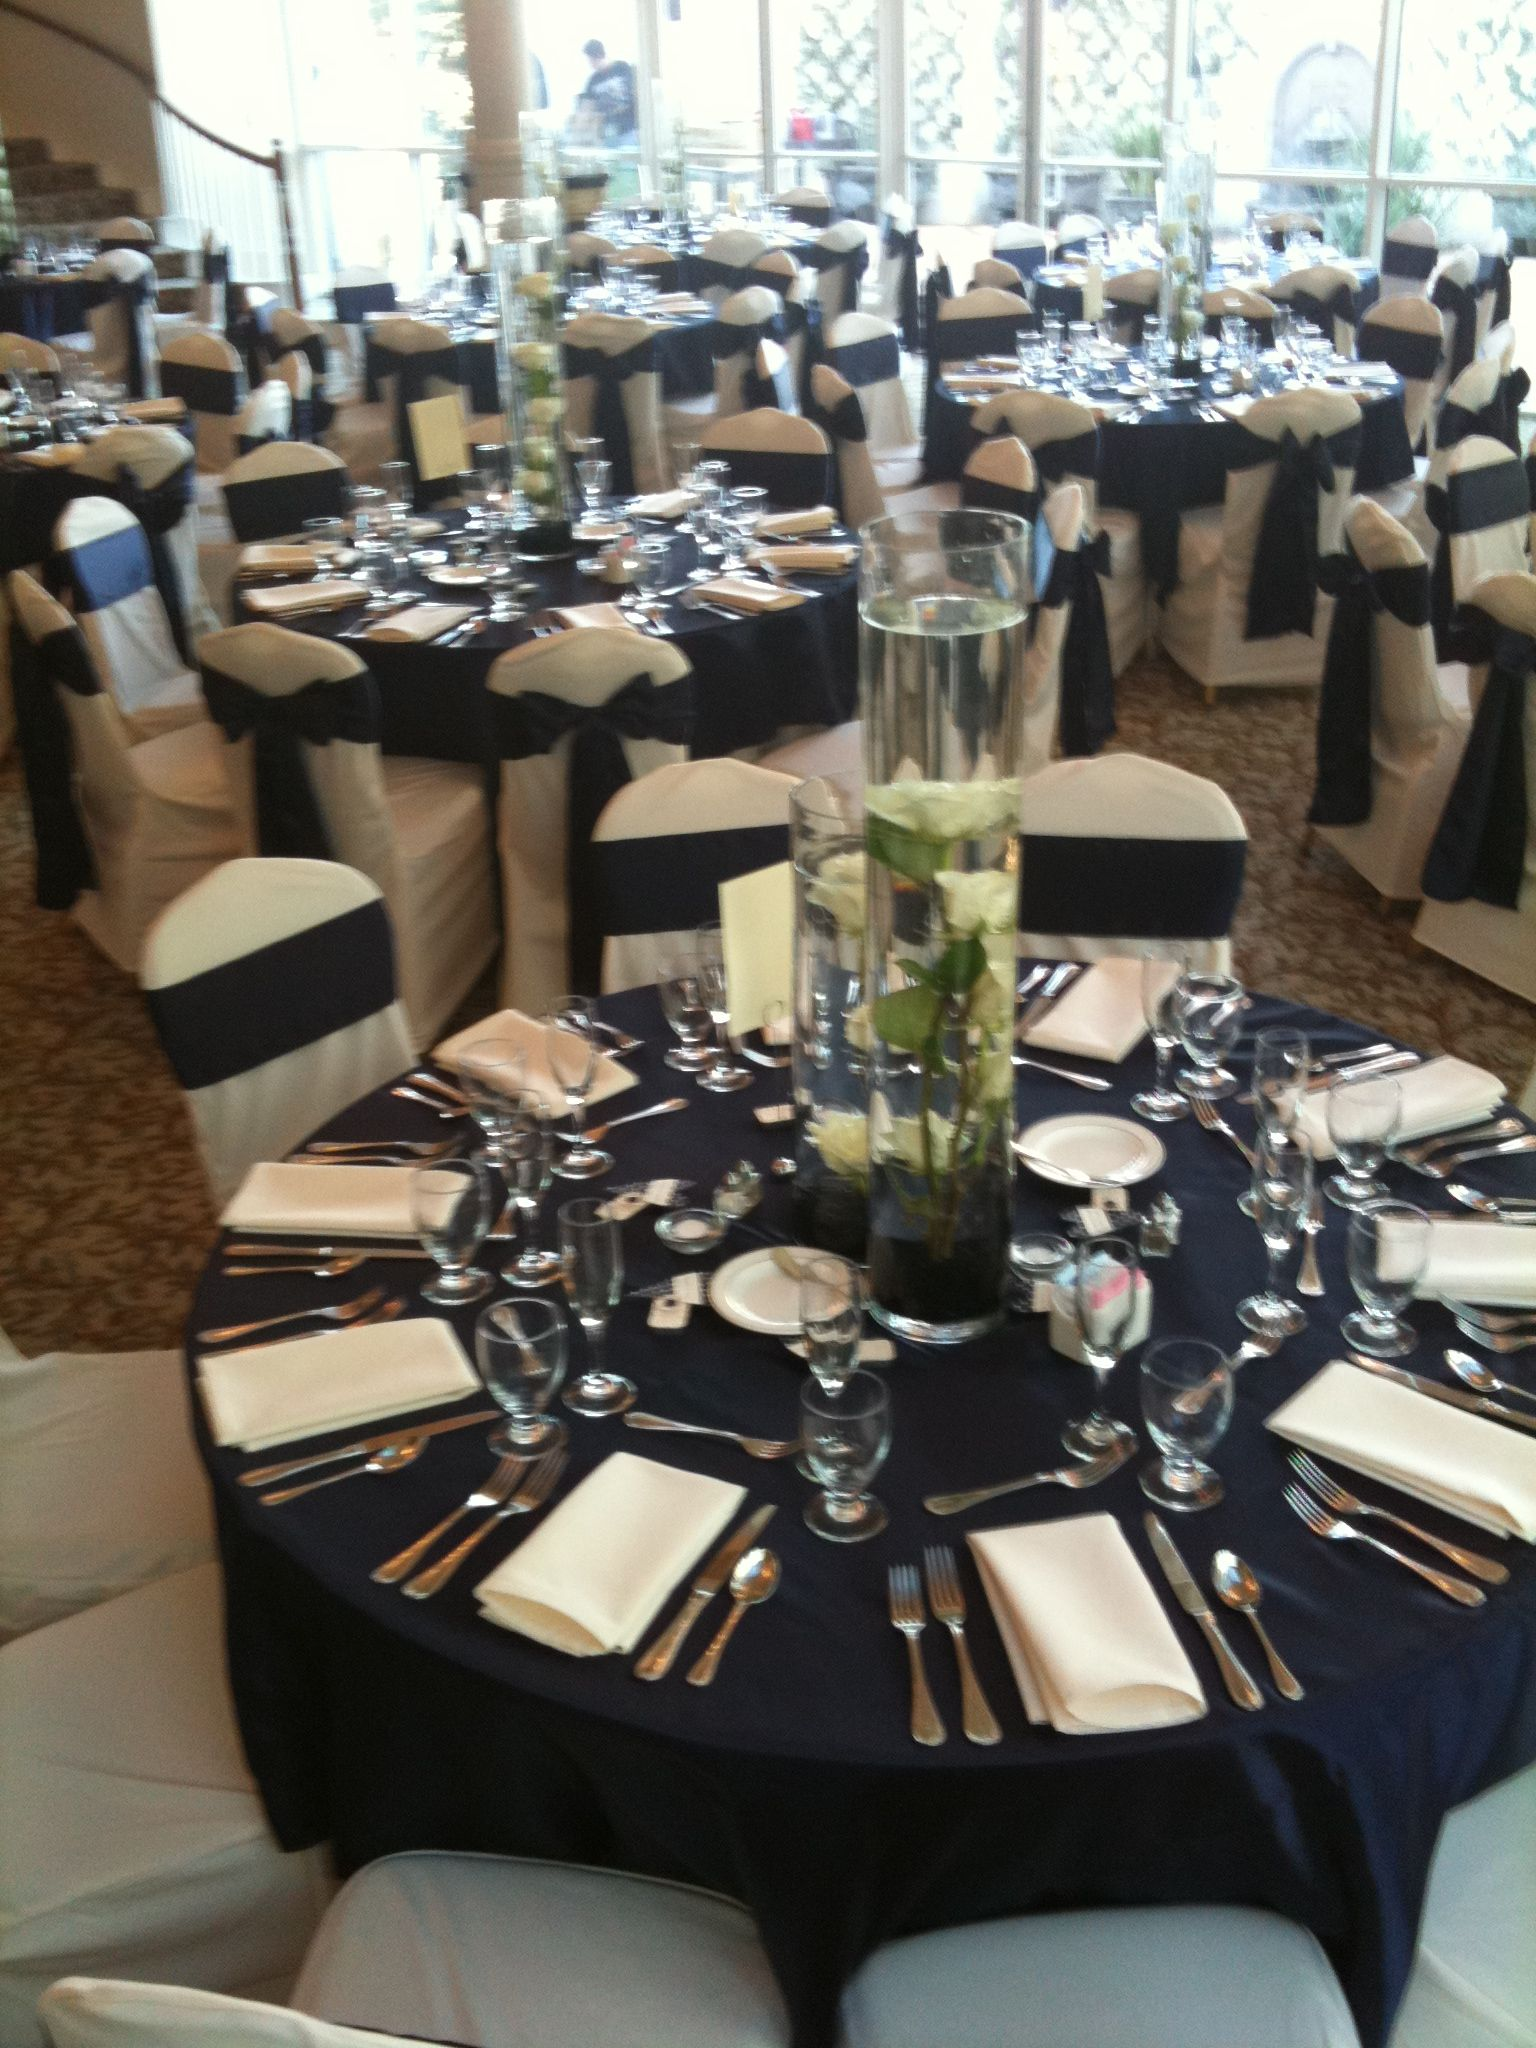 Our Ivory Tablecloth Under Our Satin Navy Overlays With Ivory Chair Covers  And Satin Navy Chair Sashes. Wedding At #ashtongardens .